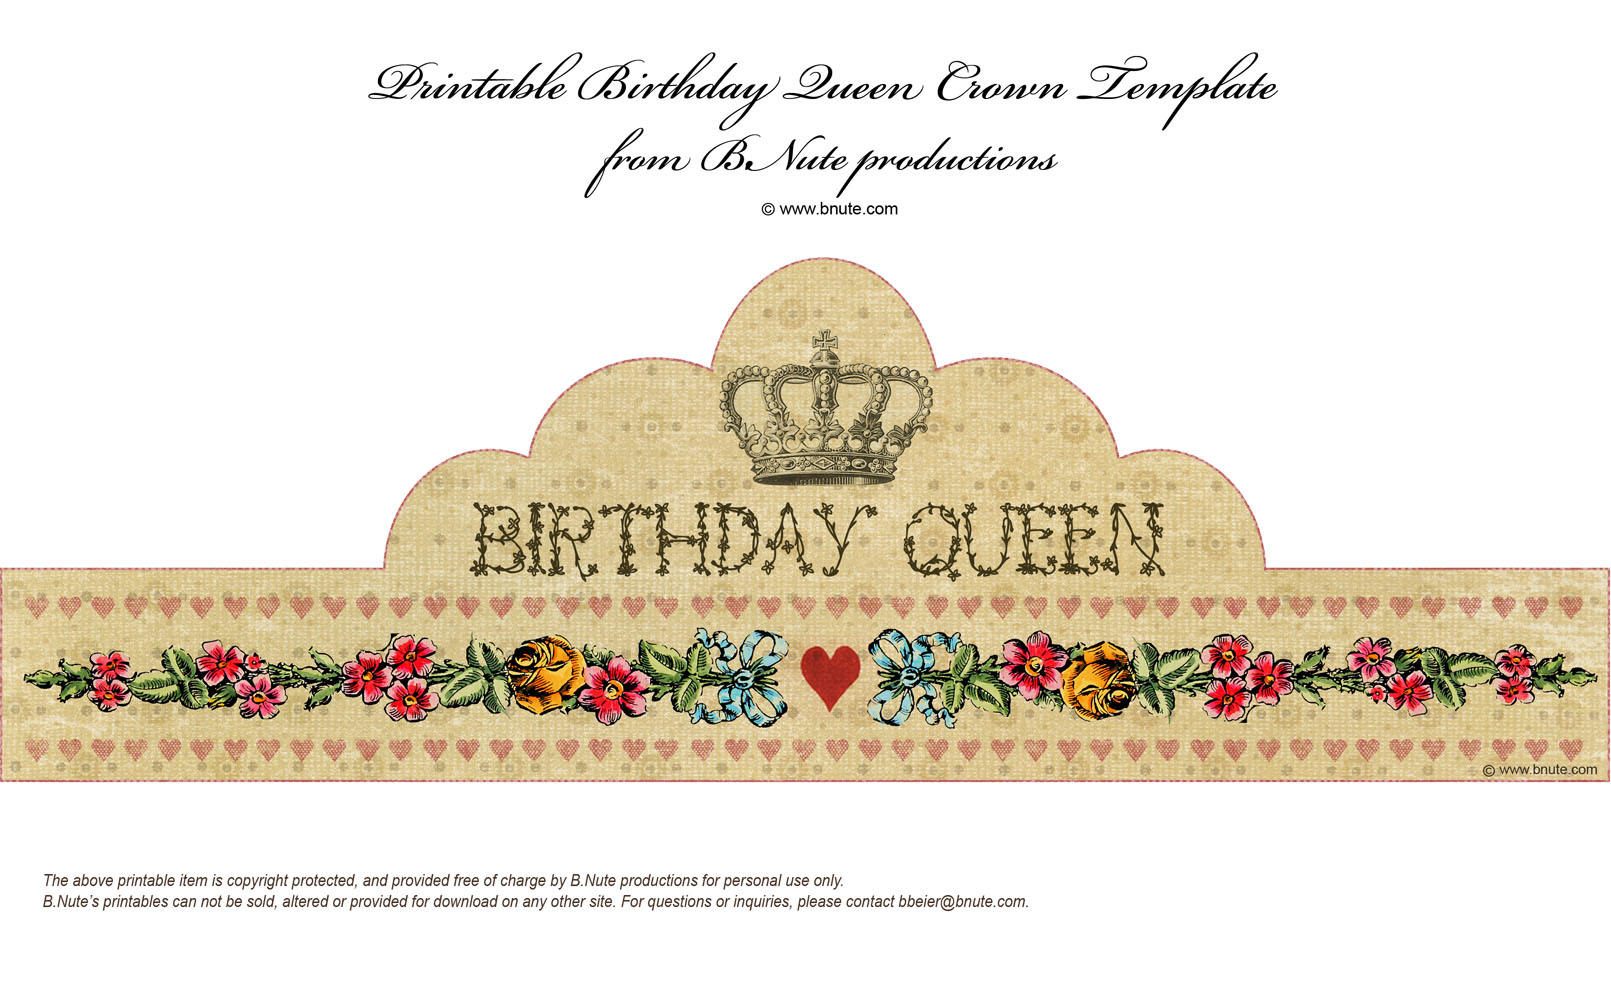 Intrepid image regarding printable birthday crown